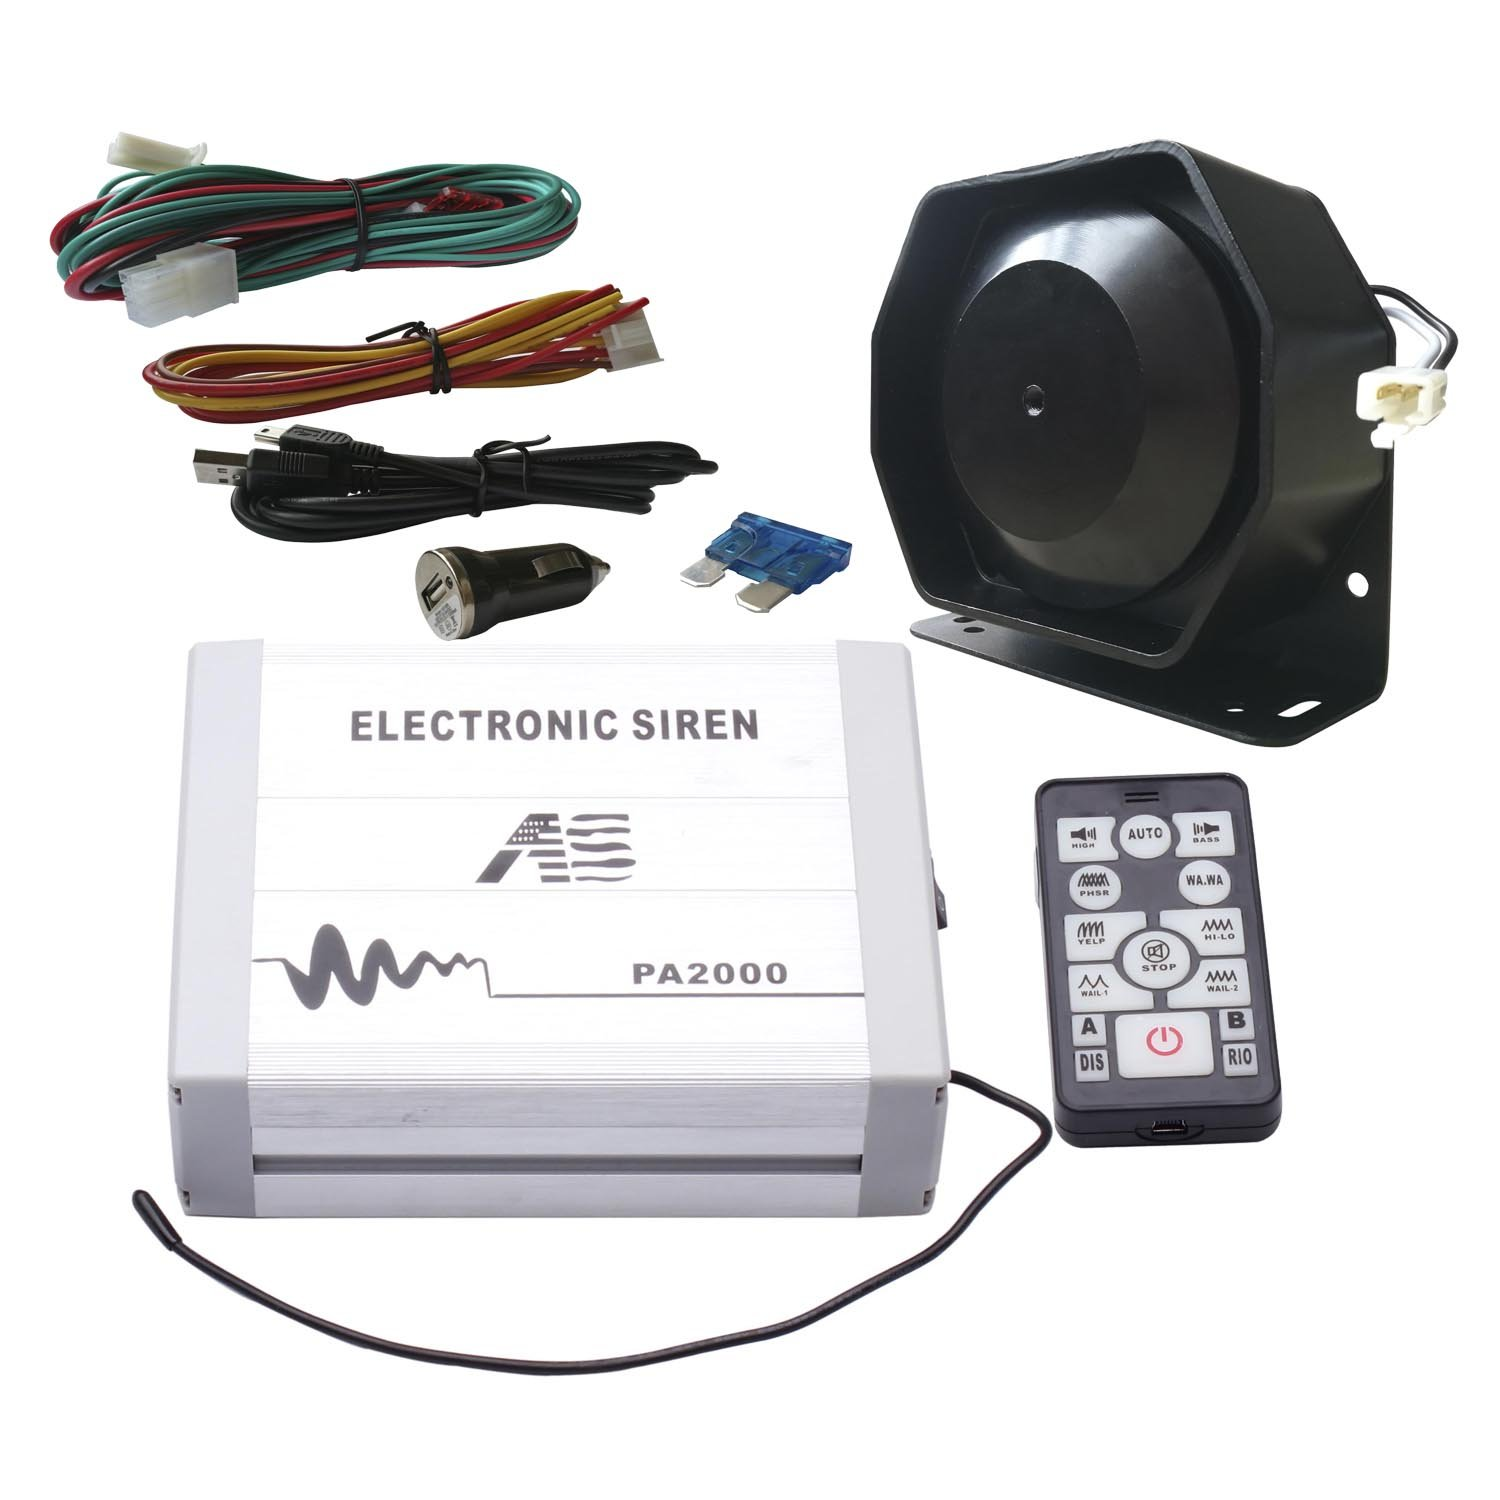 Cheap Code 3 Siren Tones Find Deals On Line At Change Whelen Get Quotations As 100w Police Bundle Pa2000e Spk0021 Piece Pack 20 12v With